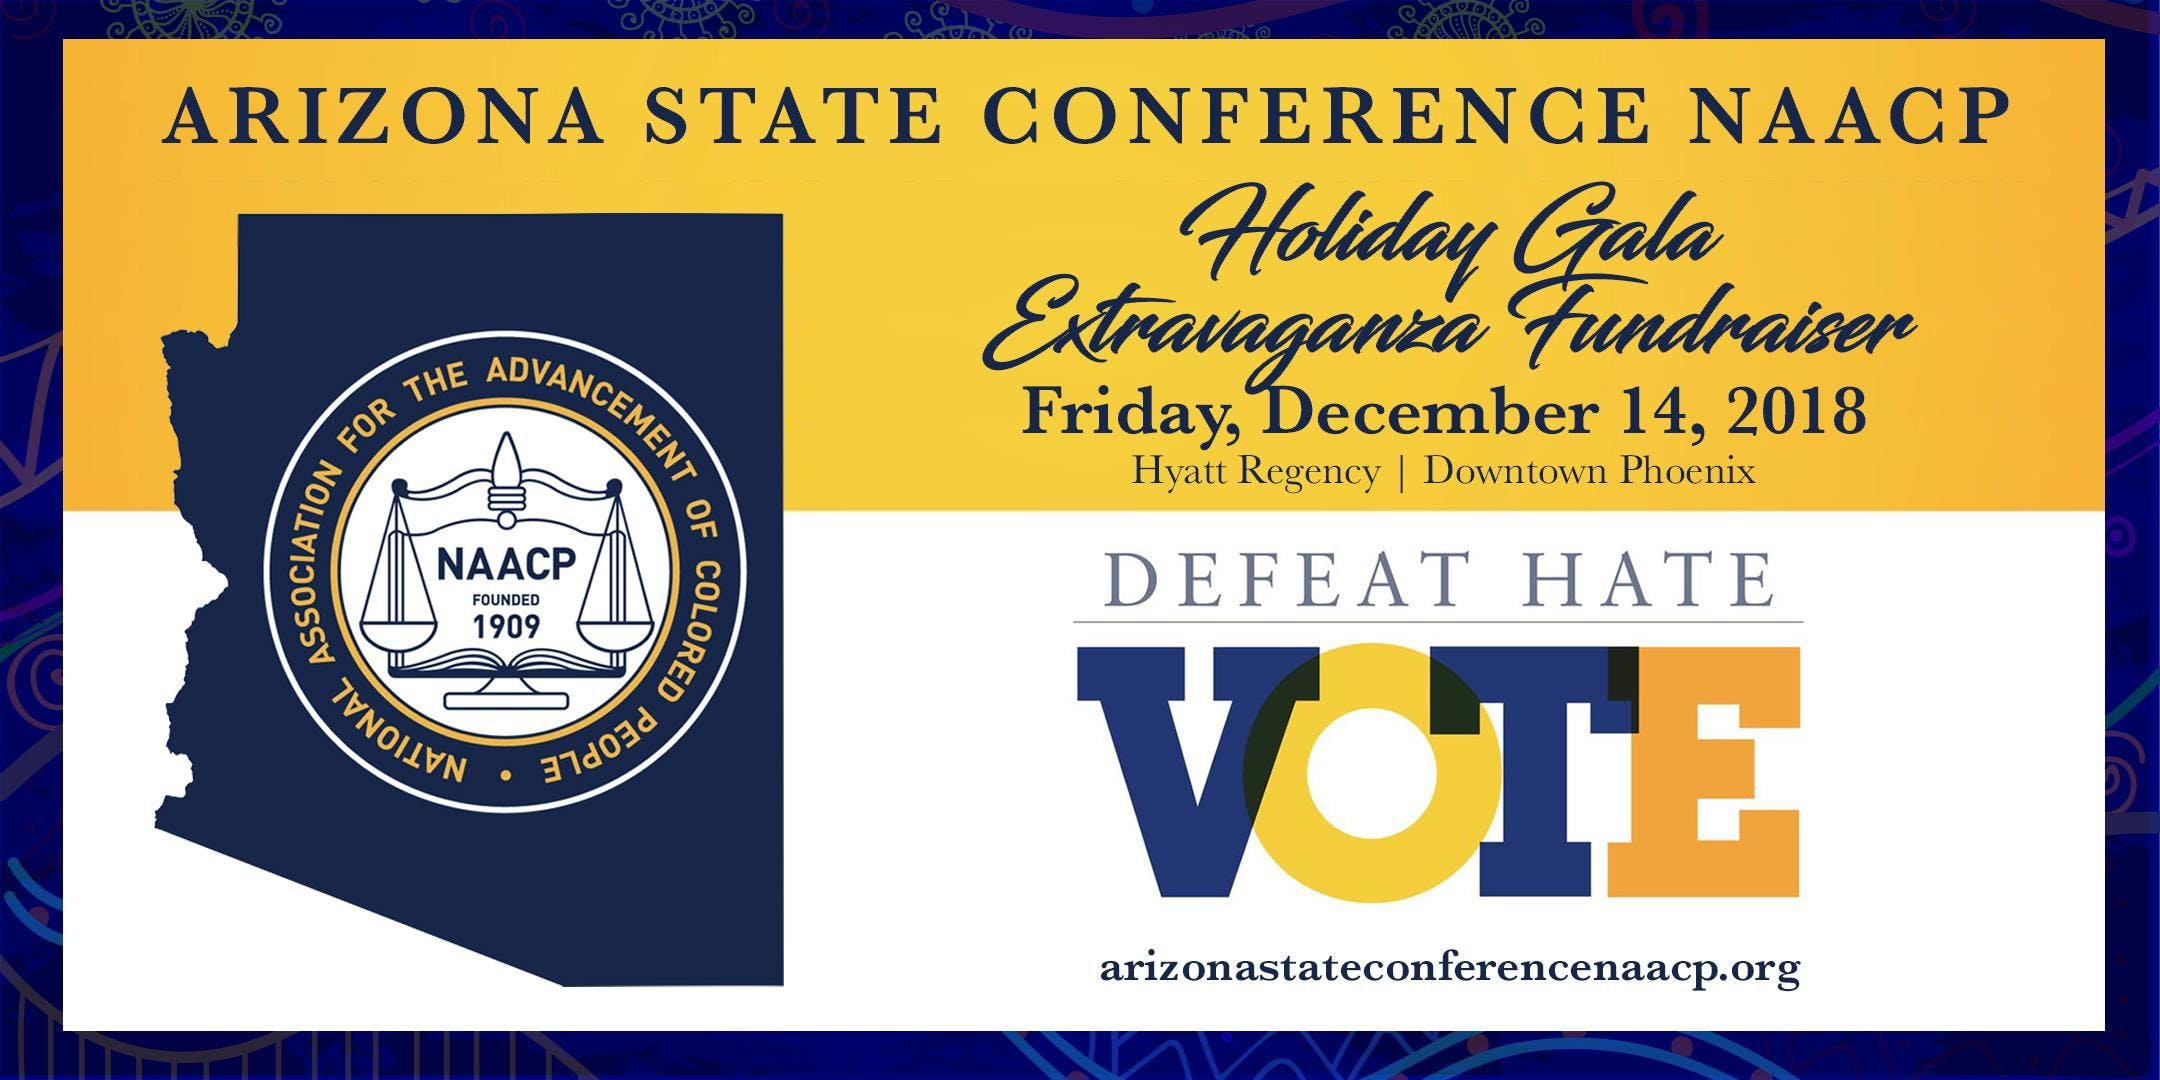 Arizona State Conference NAACP Holiday Gala